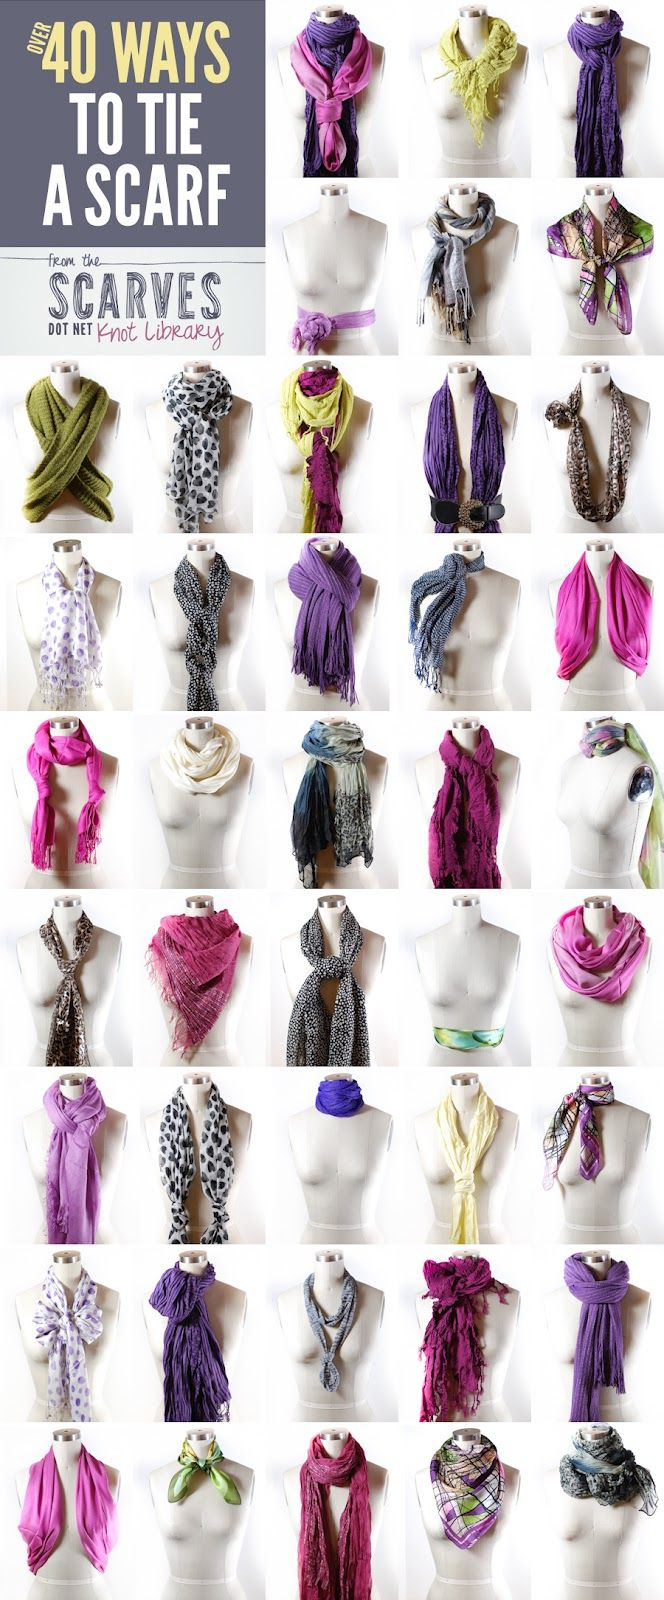 good thing I have a gazillion scarves